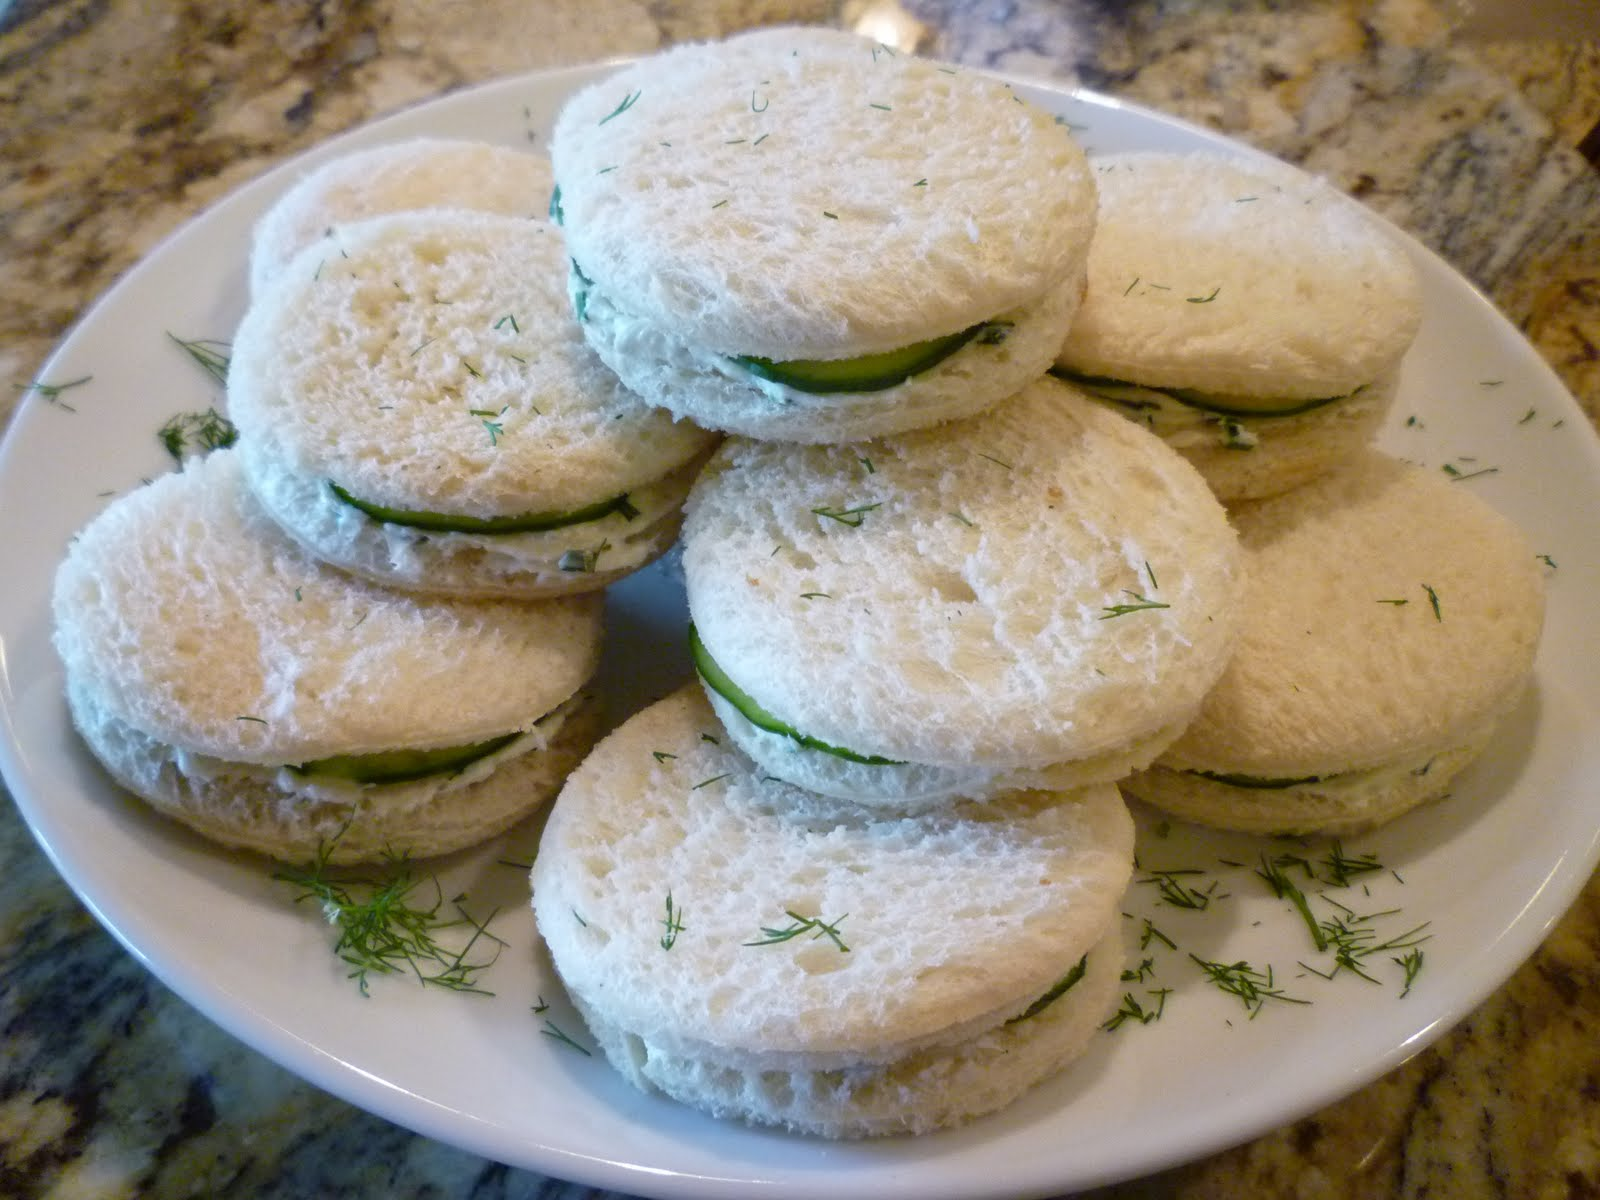 The Chef In My Head: Chive Cream Cheese and Cucumber Tea Sandwiches